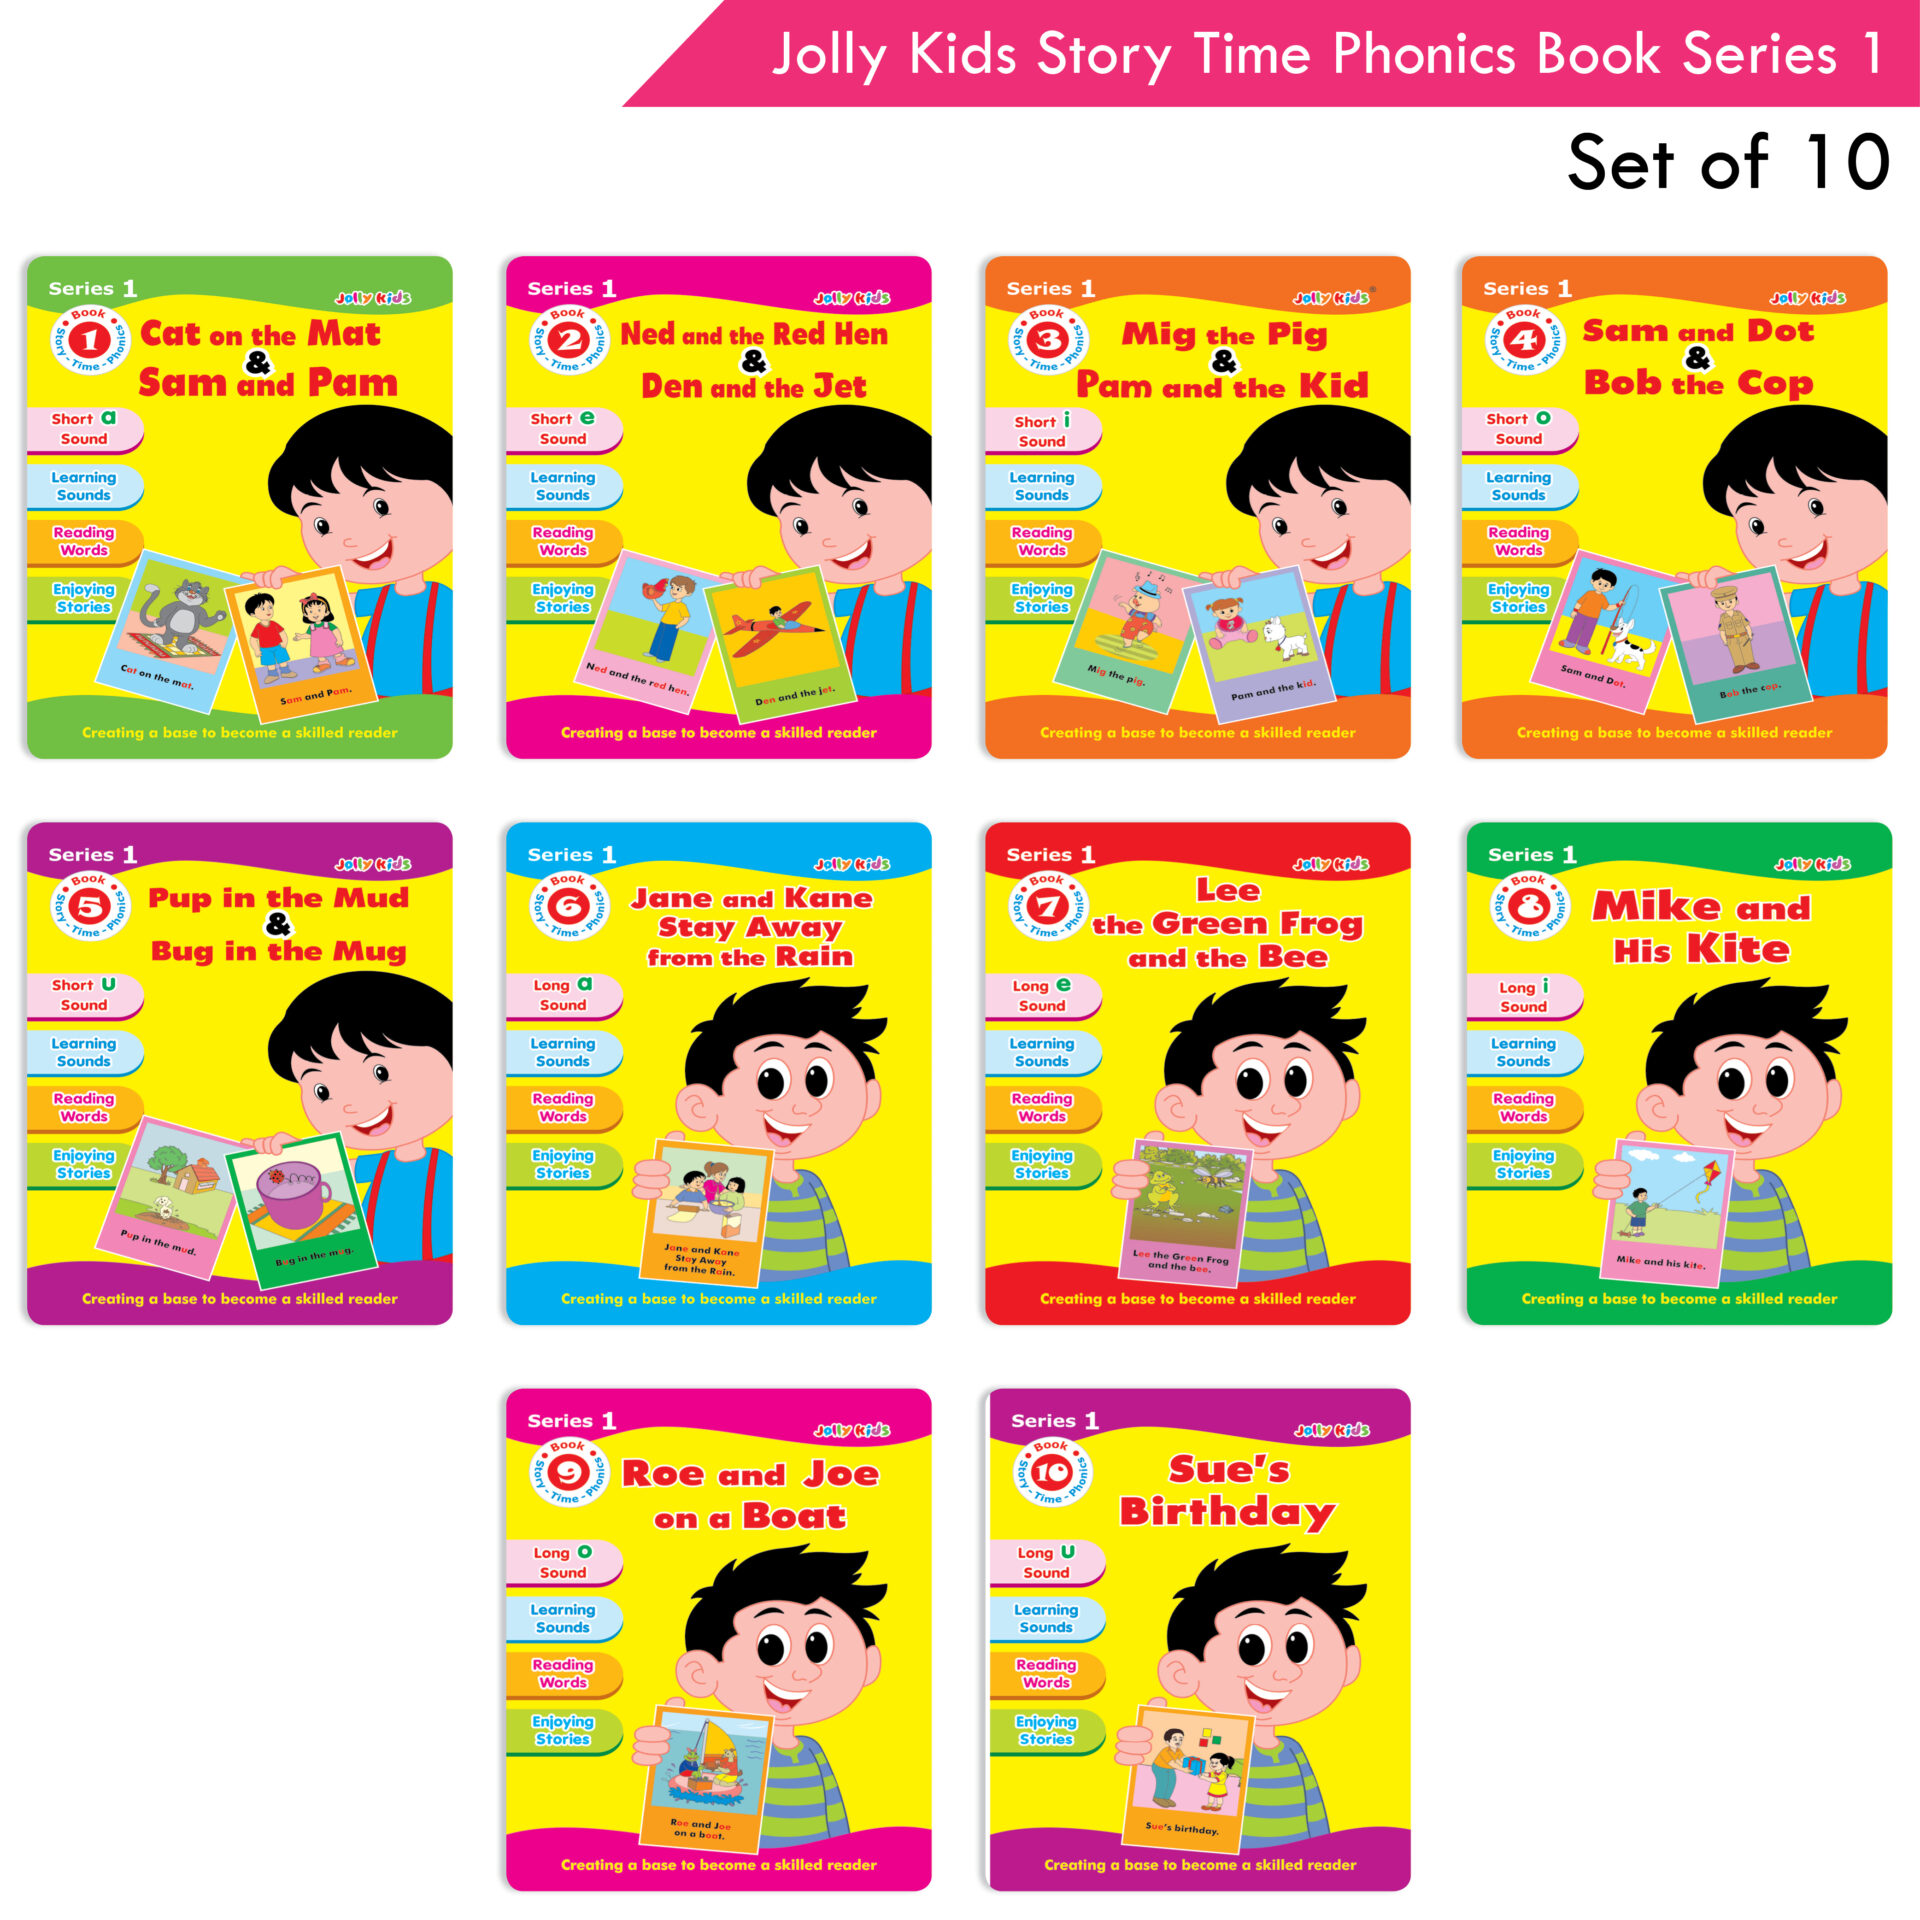 Jolly Kids Story Time Phonics Book Series 1 Set of 10 1